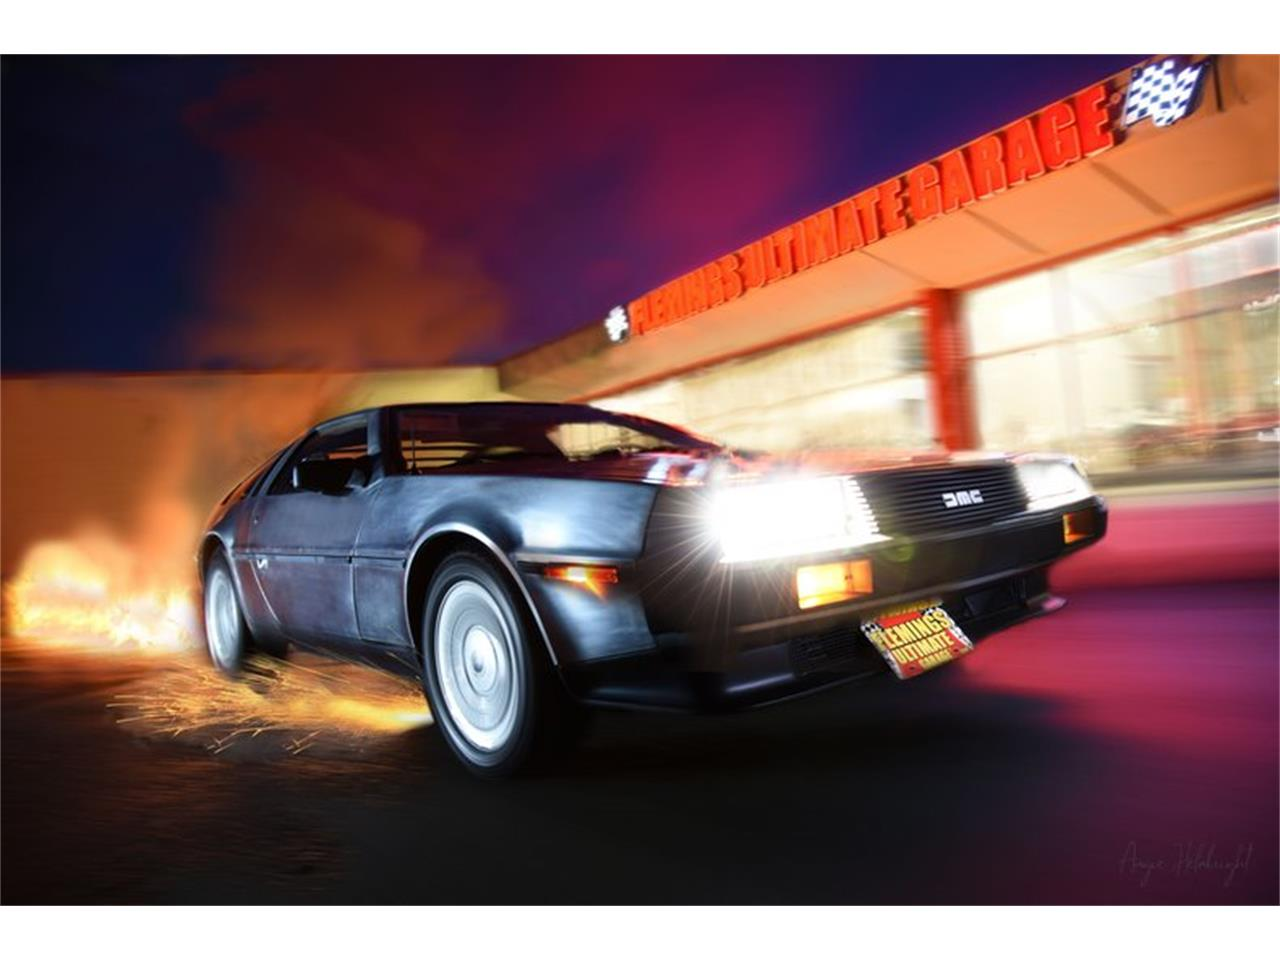 Large Picture of '81 DeLorean DMC-12 located in Rockville Maryland - $49,990.00 - QZ9U